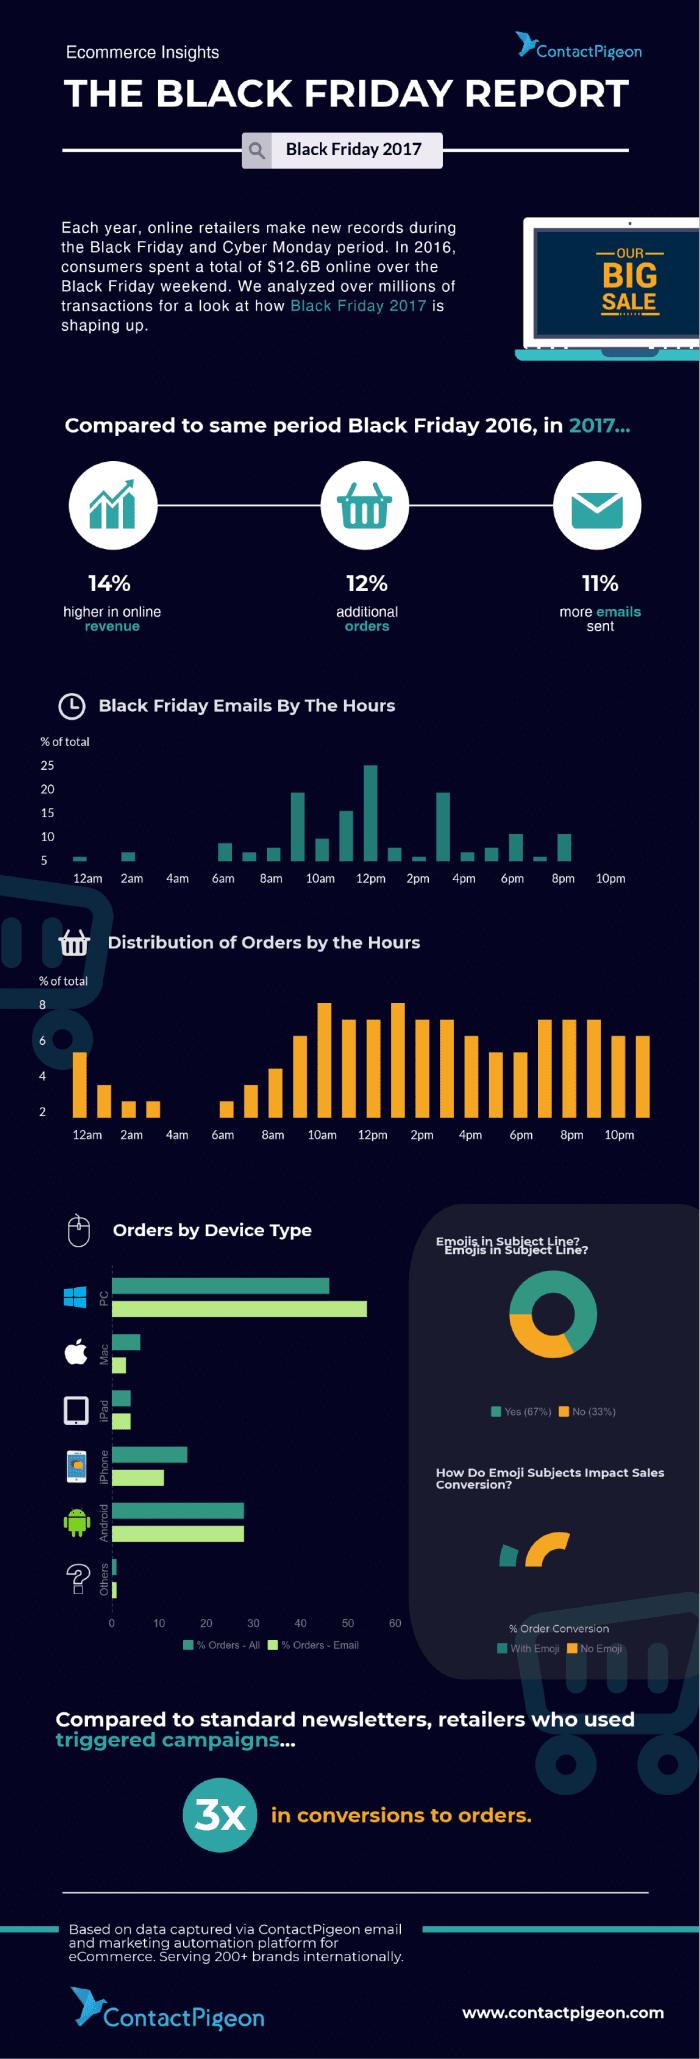 ContactPigeon-Black-Friday-2017-Report-Infographic